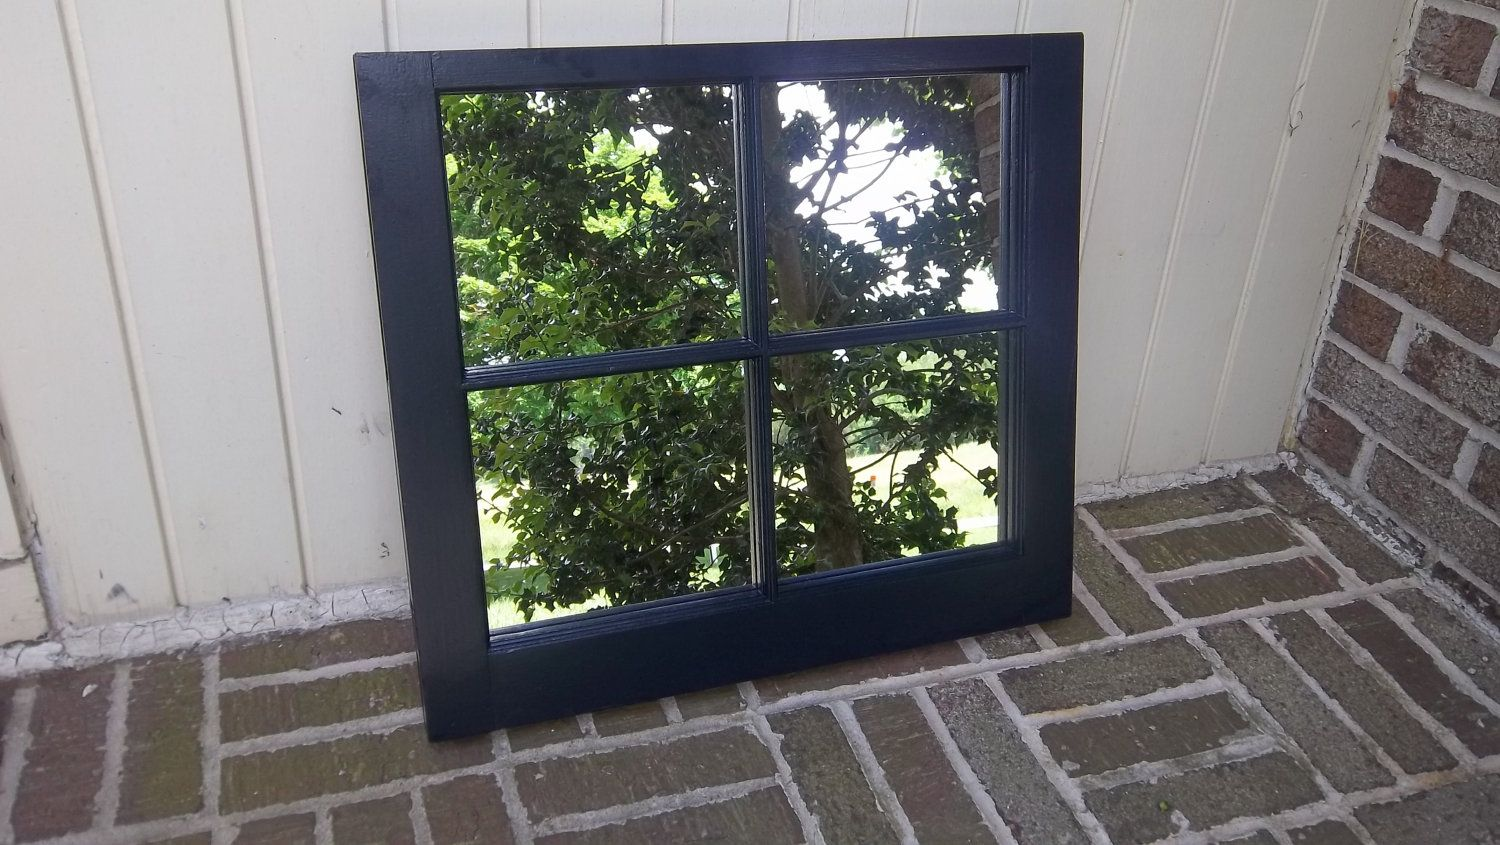 6 pane window frame ideas  vintage  pane window refinished in navy paint and mirror  navy